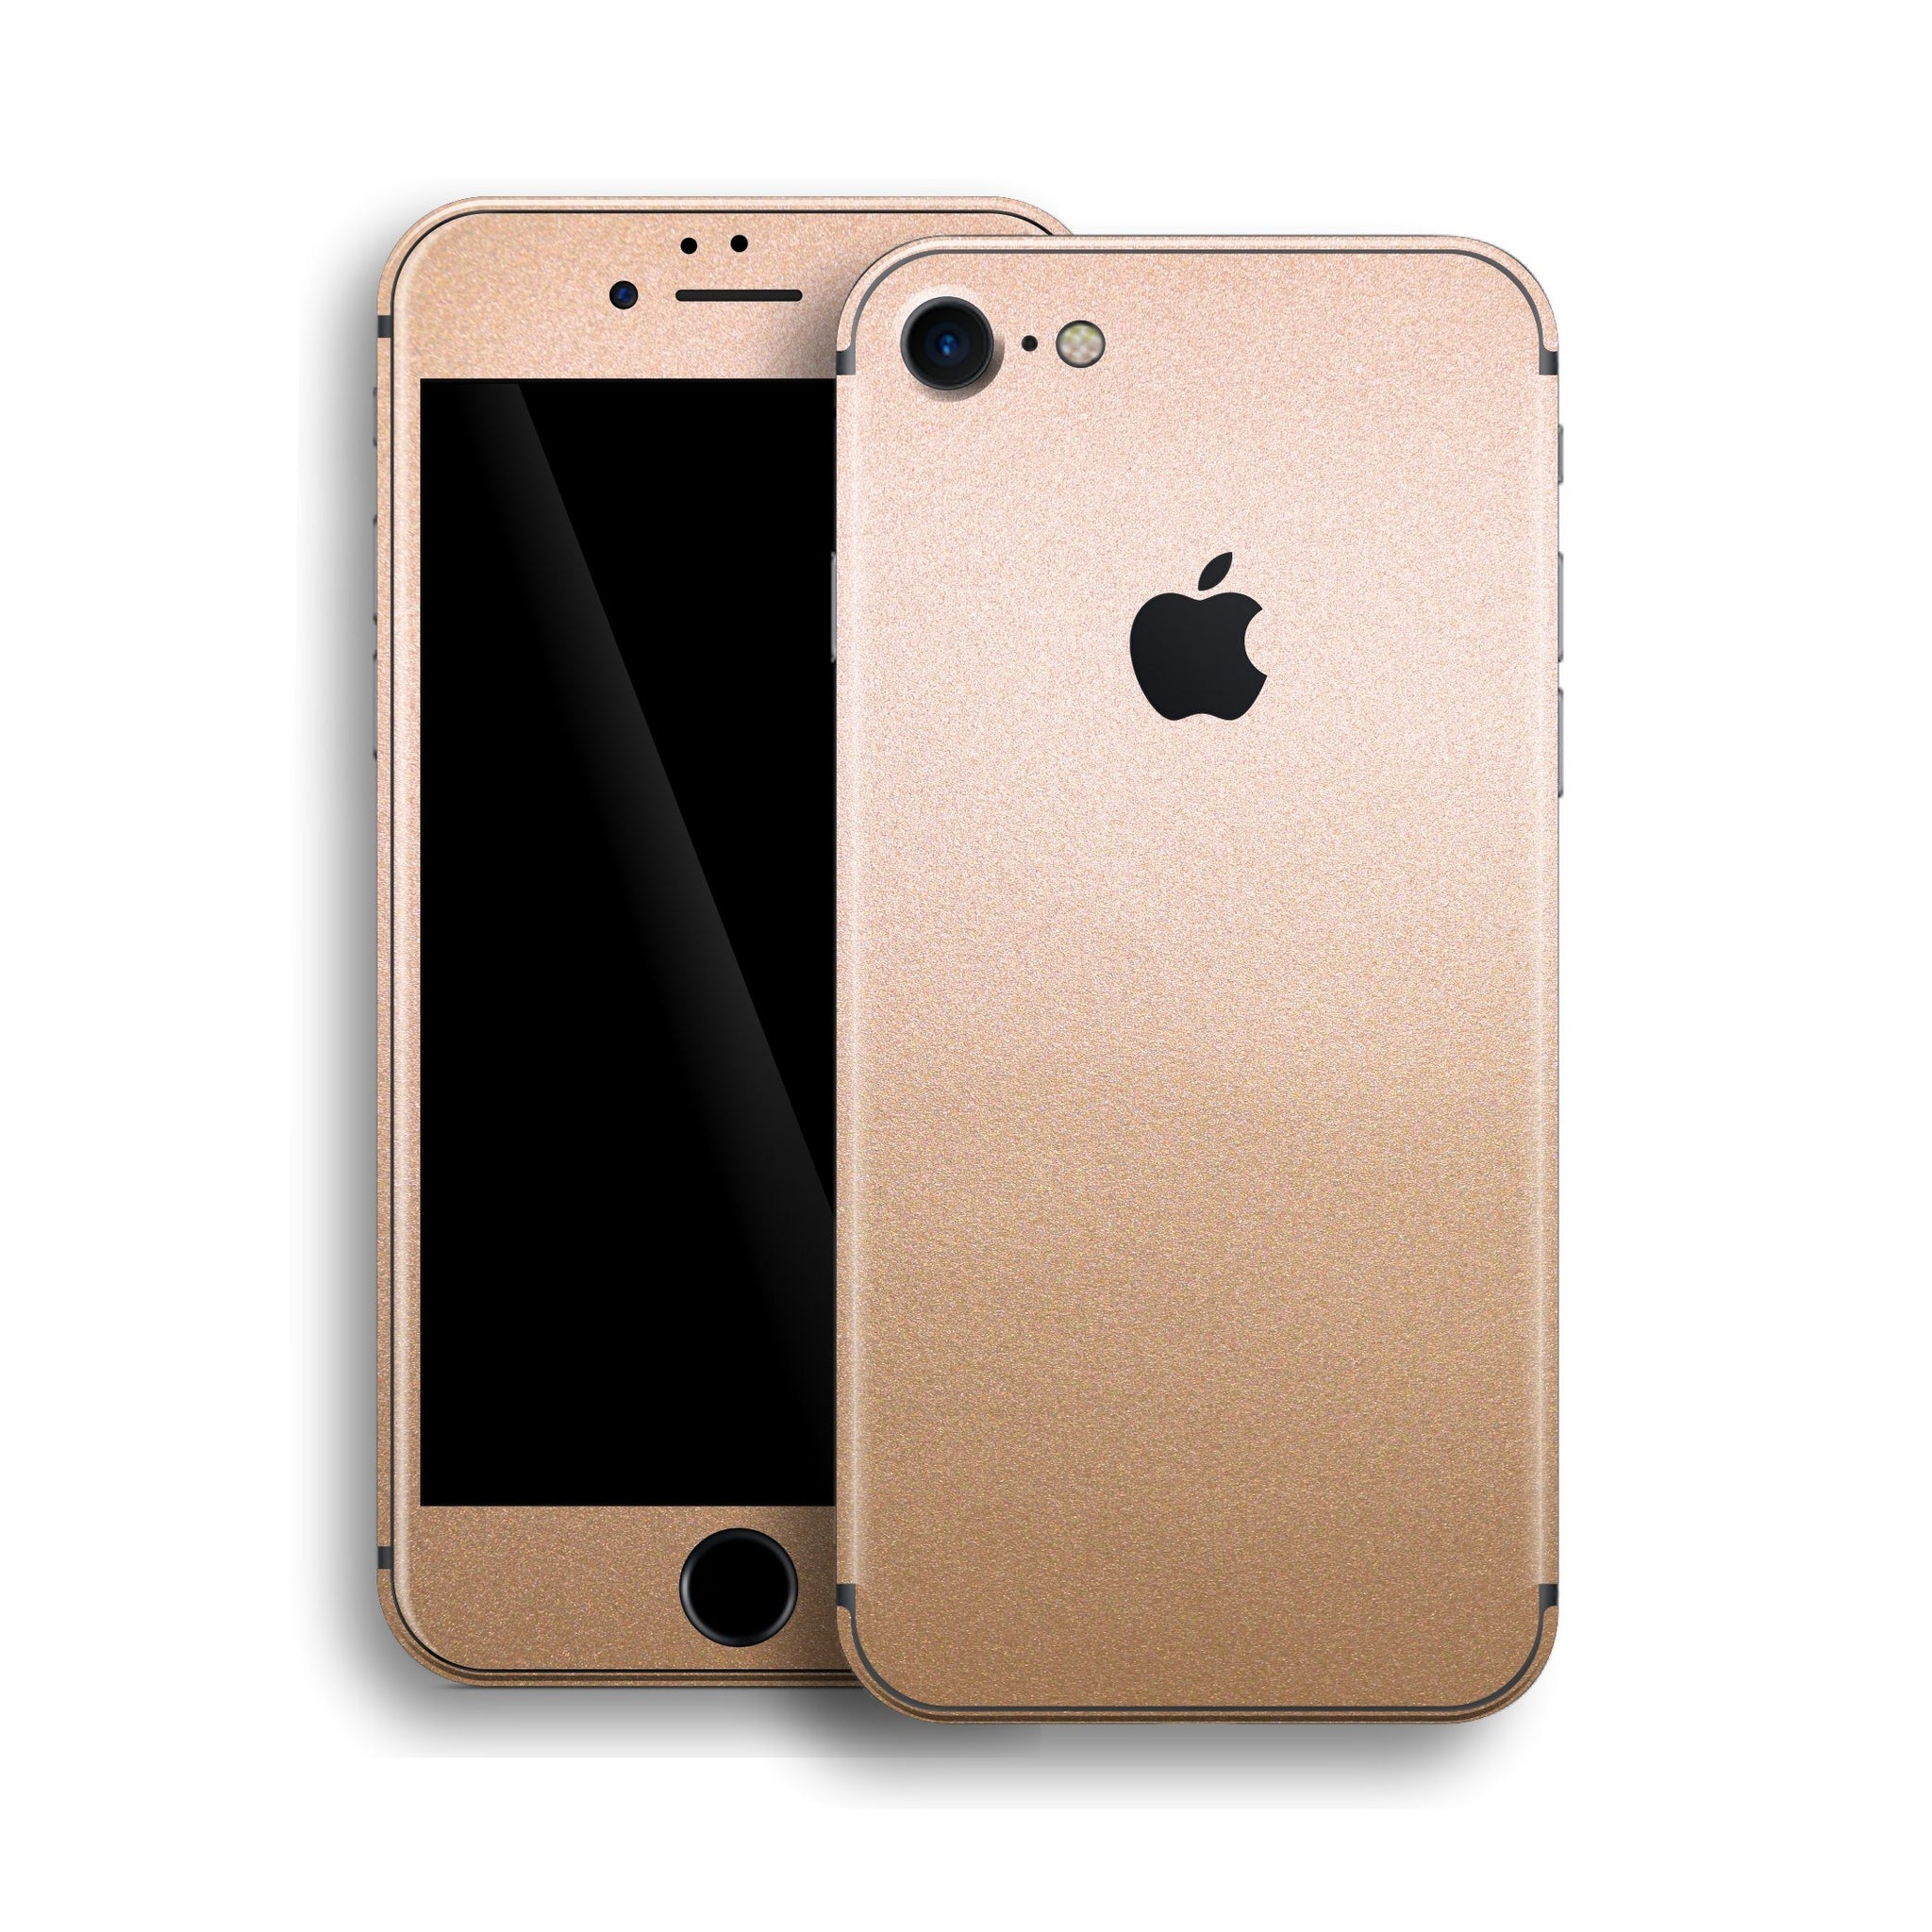 iPhone 8 Luxuria Rose Gold Metallic Skin Wrap Decal Protector | EasySkinz